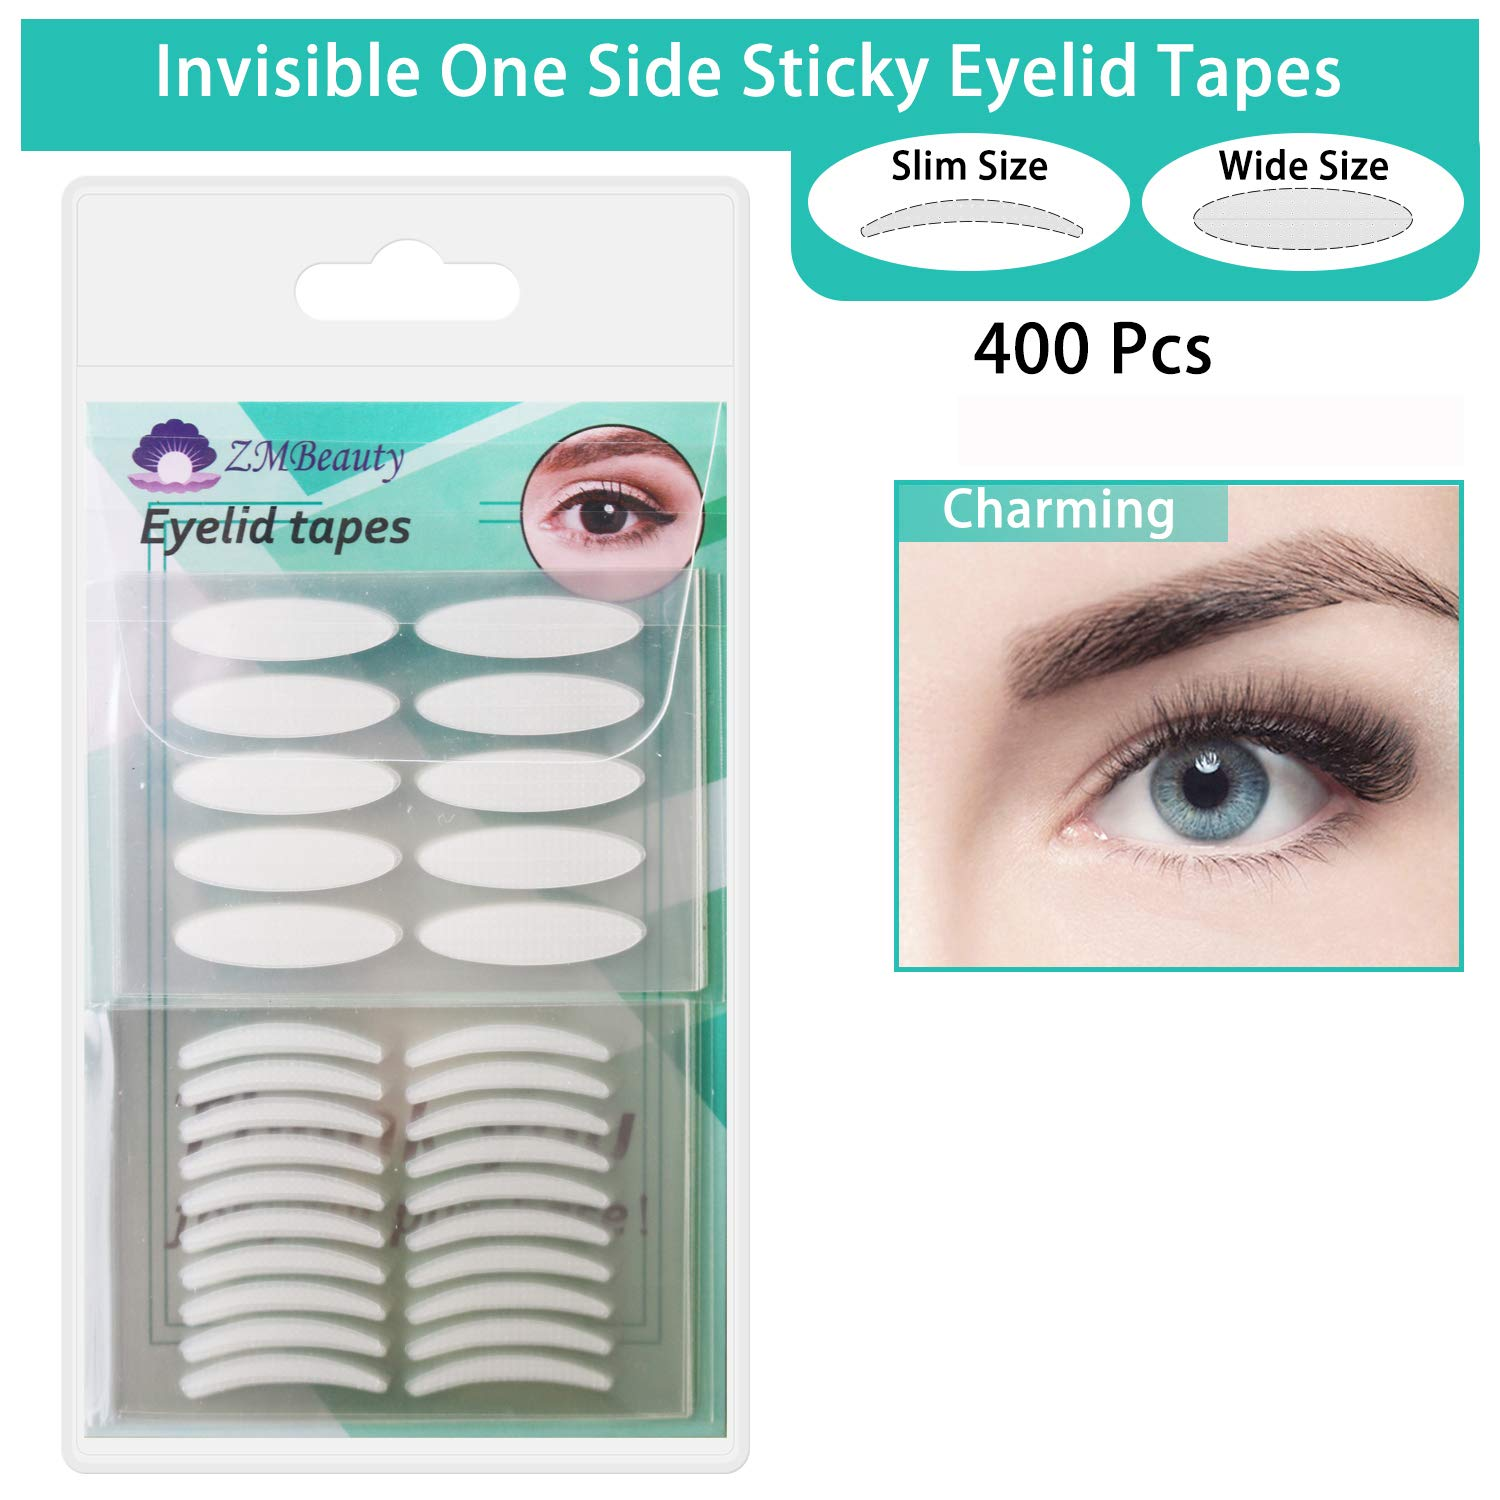 400Pcs Natural invisible Single Side Eyelid Tape Stickers Medical-use Fiber Eyelid Lift Strip, Instant Eye Lift Without Surgery, Perfect for Uneven Mono-Eyelids, 100 Pairs Slim + 100 Pairs Wide